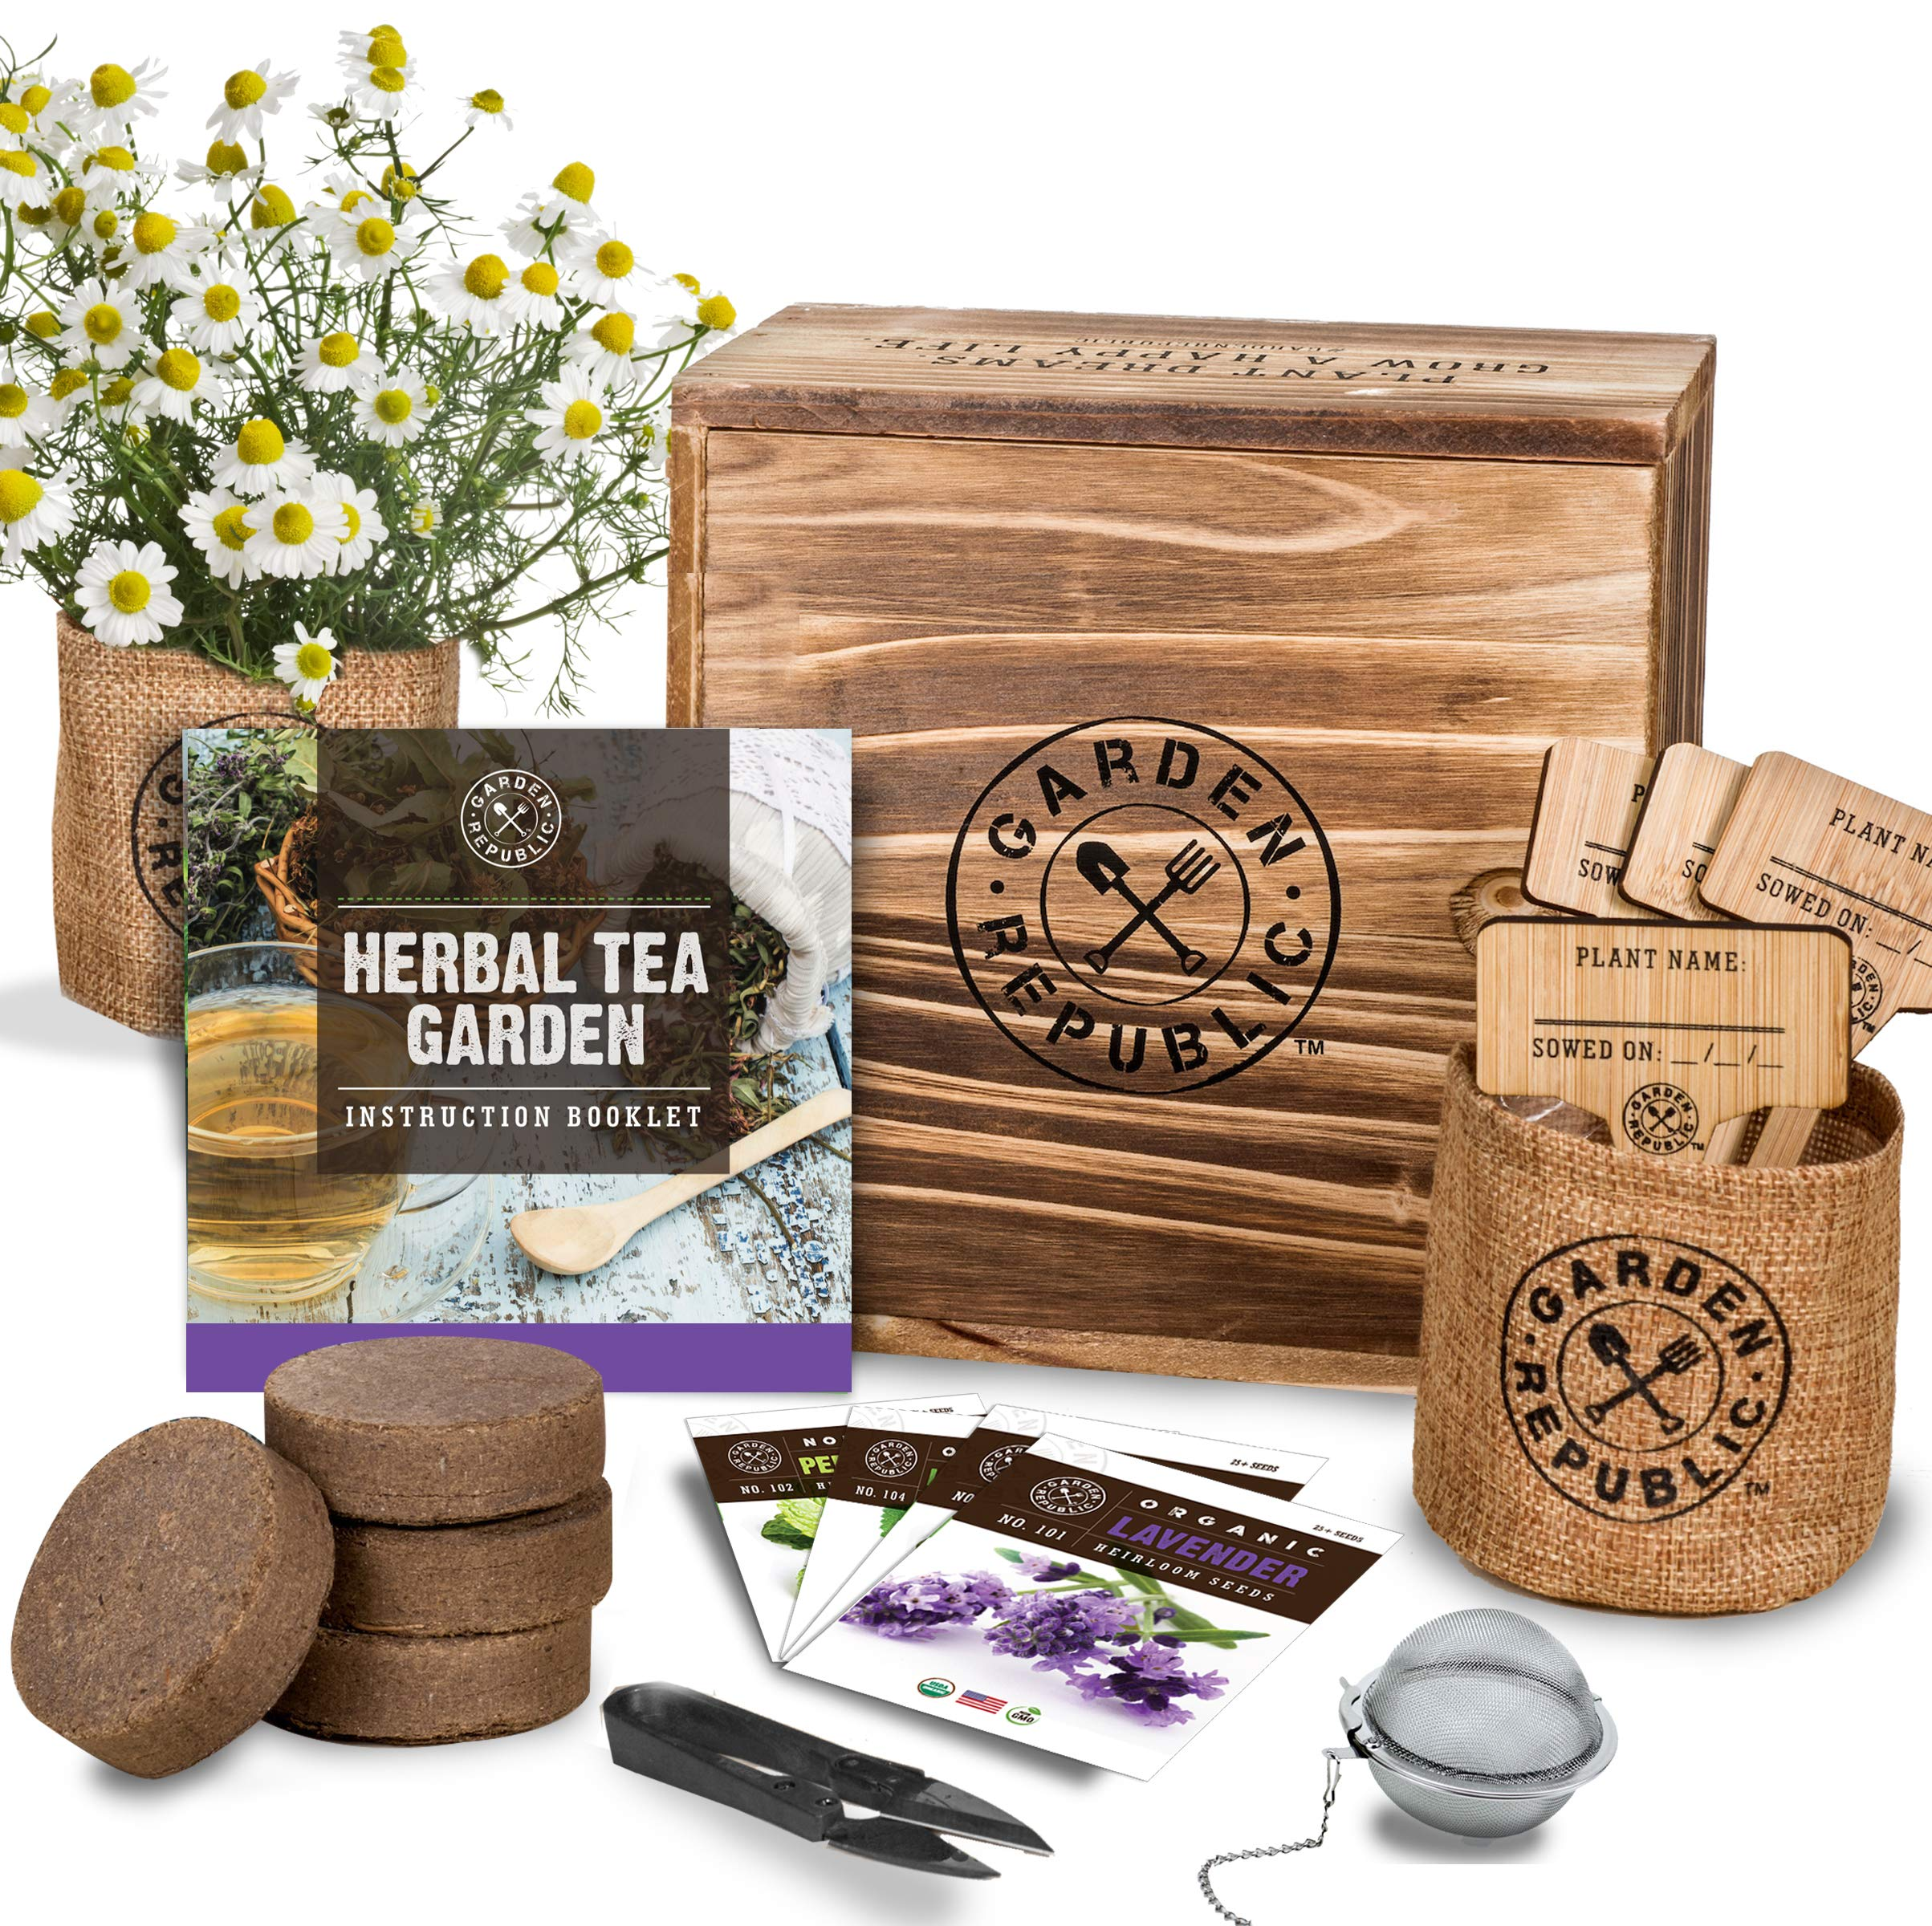 Indoor Herb Garden Seed Starter Kit - Organic Herbal Tea Growing Kits, Grow Medicinal Herbs Indoors, Lavender Chamomile Lemon Balm Mint Seeds, Soil, Plant Markers, Planting Pots, Infuser, Planter Box by · GARDEN REPUBLIC ·